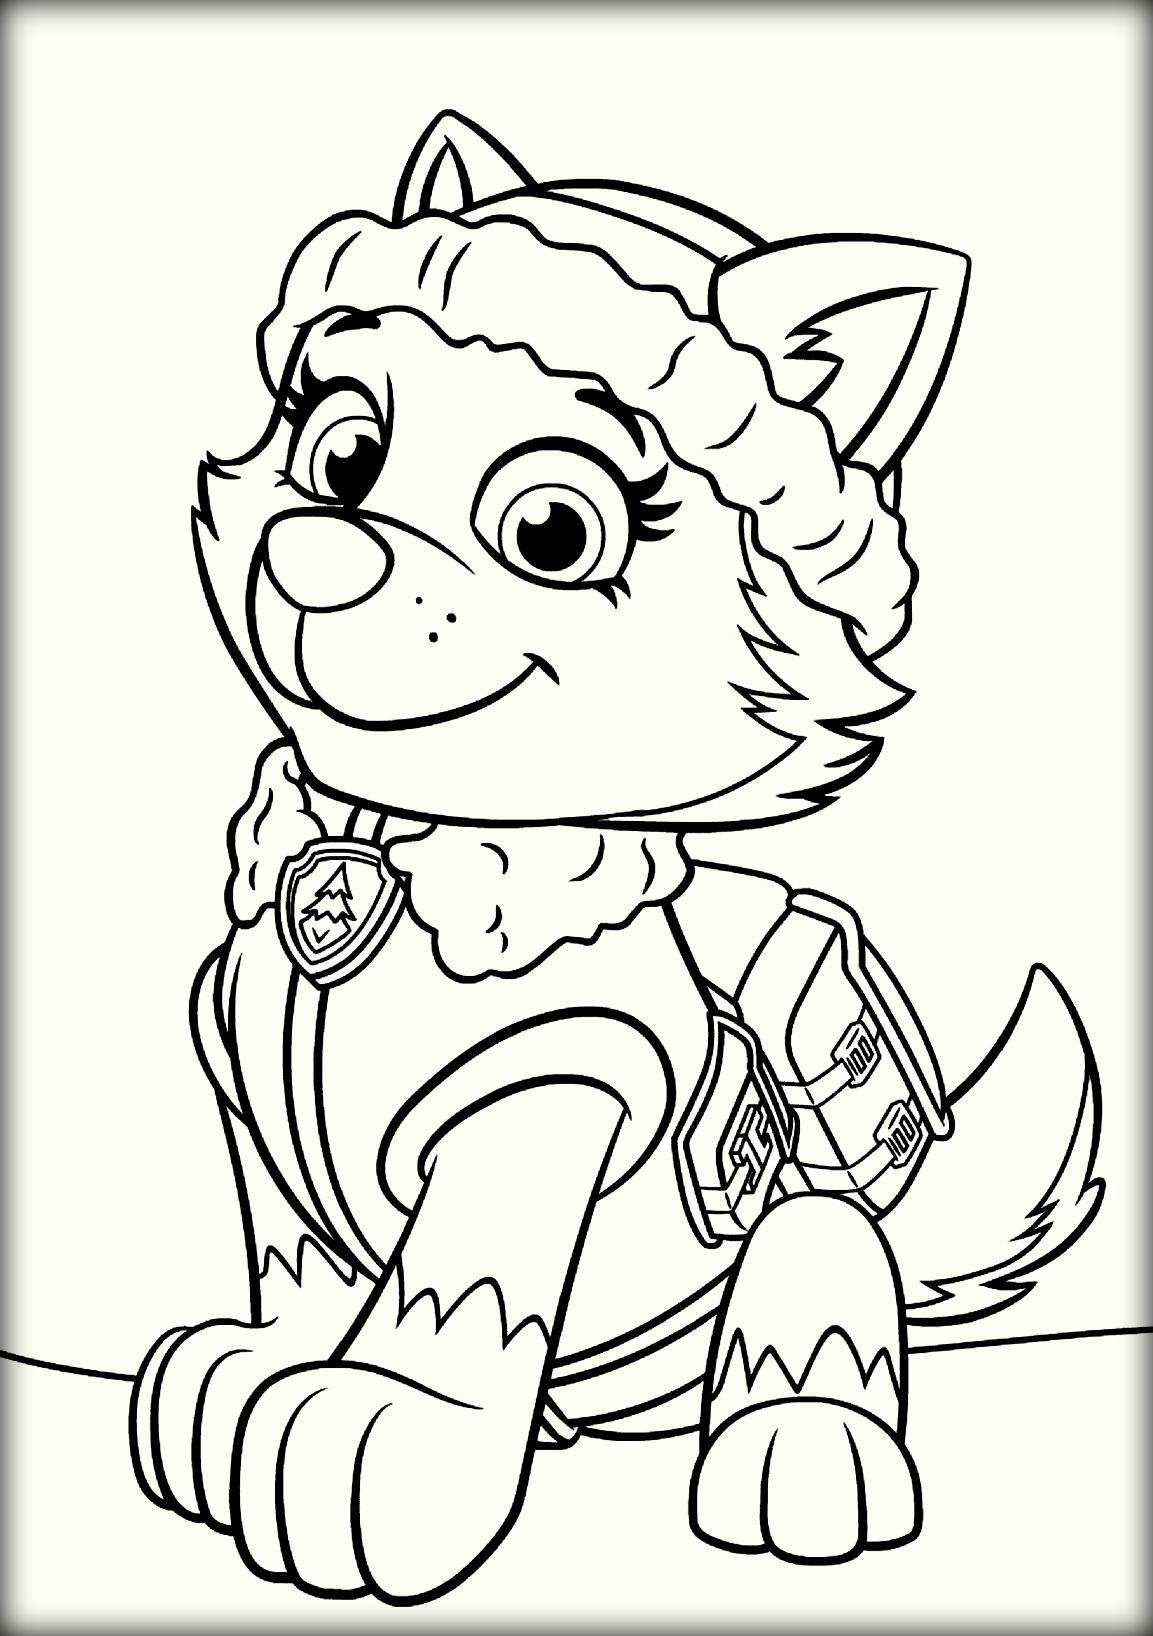 rubble paw patrol coloring page - paw patrol coloring pages